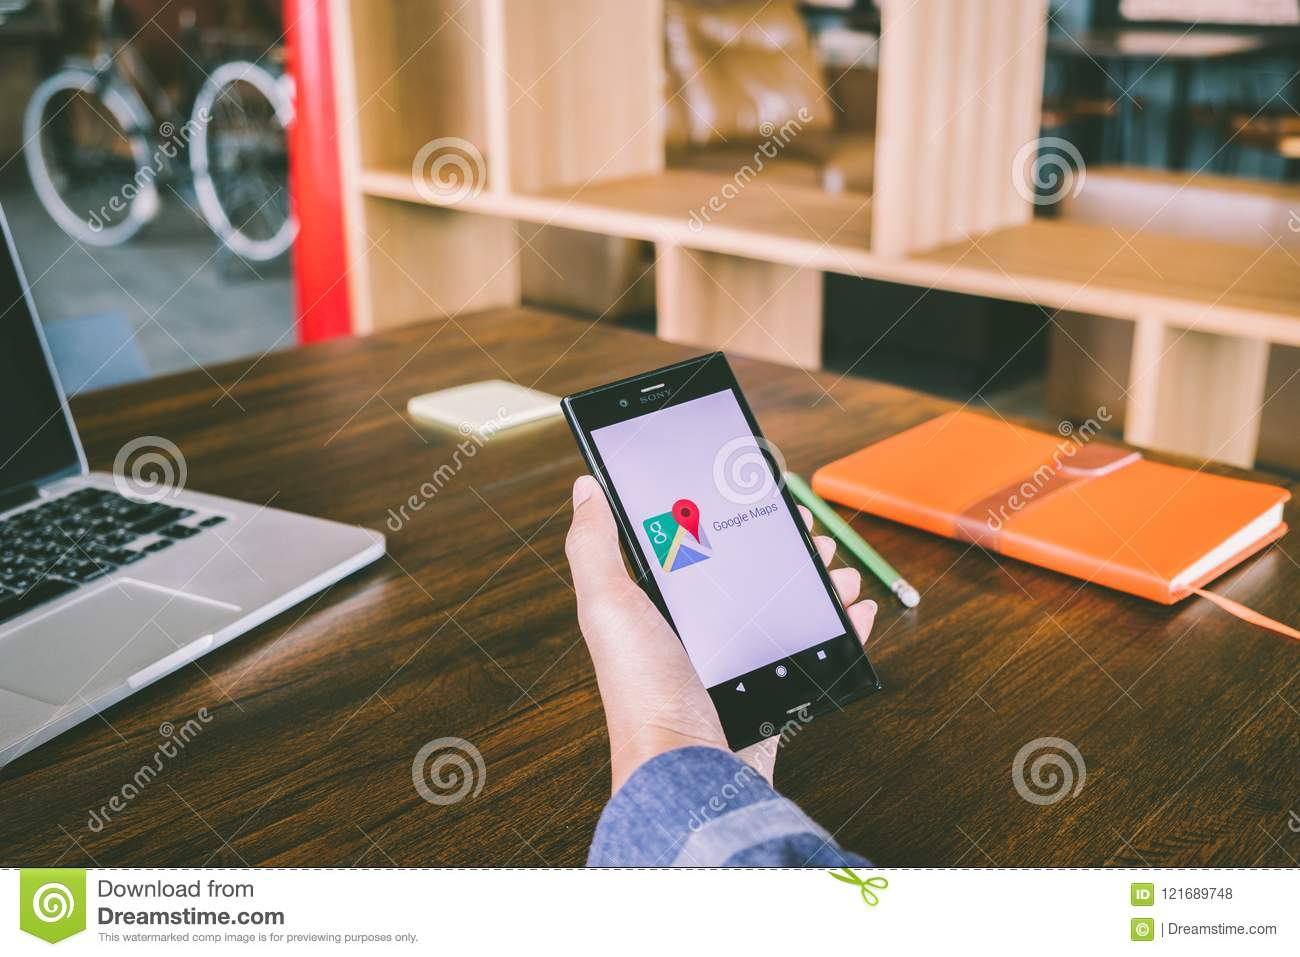 CHIANG MAI,THAILAND - July 7,2018: Man Holds Mobile Phone ... on windows 8.1 download for laptop, bbm download for laptop, minecraft download for laptop,